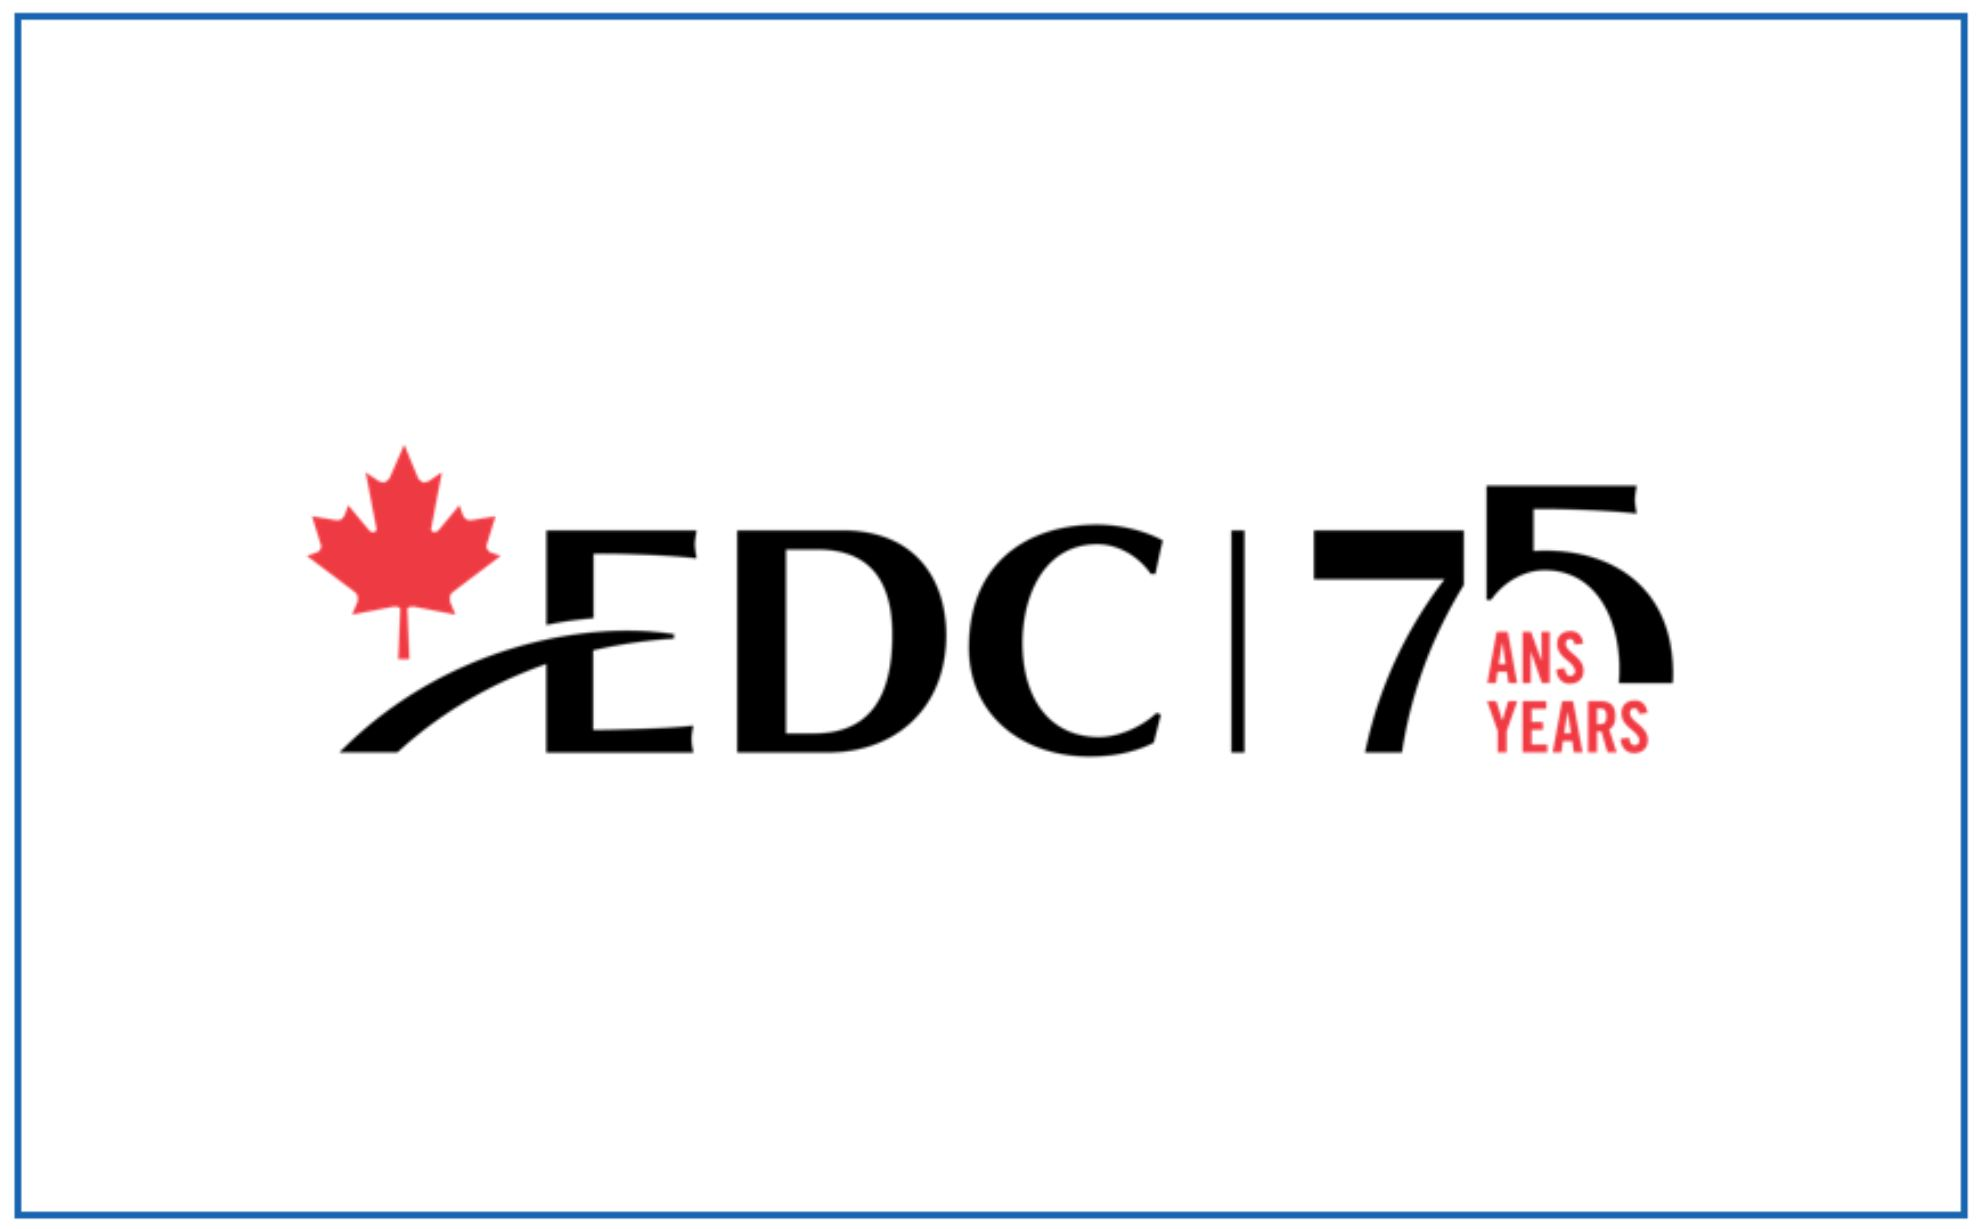 New domestic mandate enhances EDC's role in supporting all Canadian businesses through COVID-19 crisis